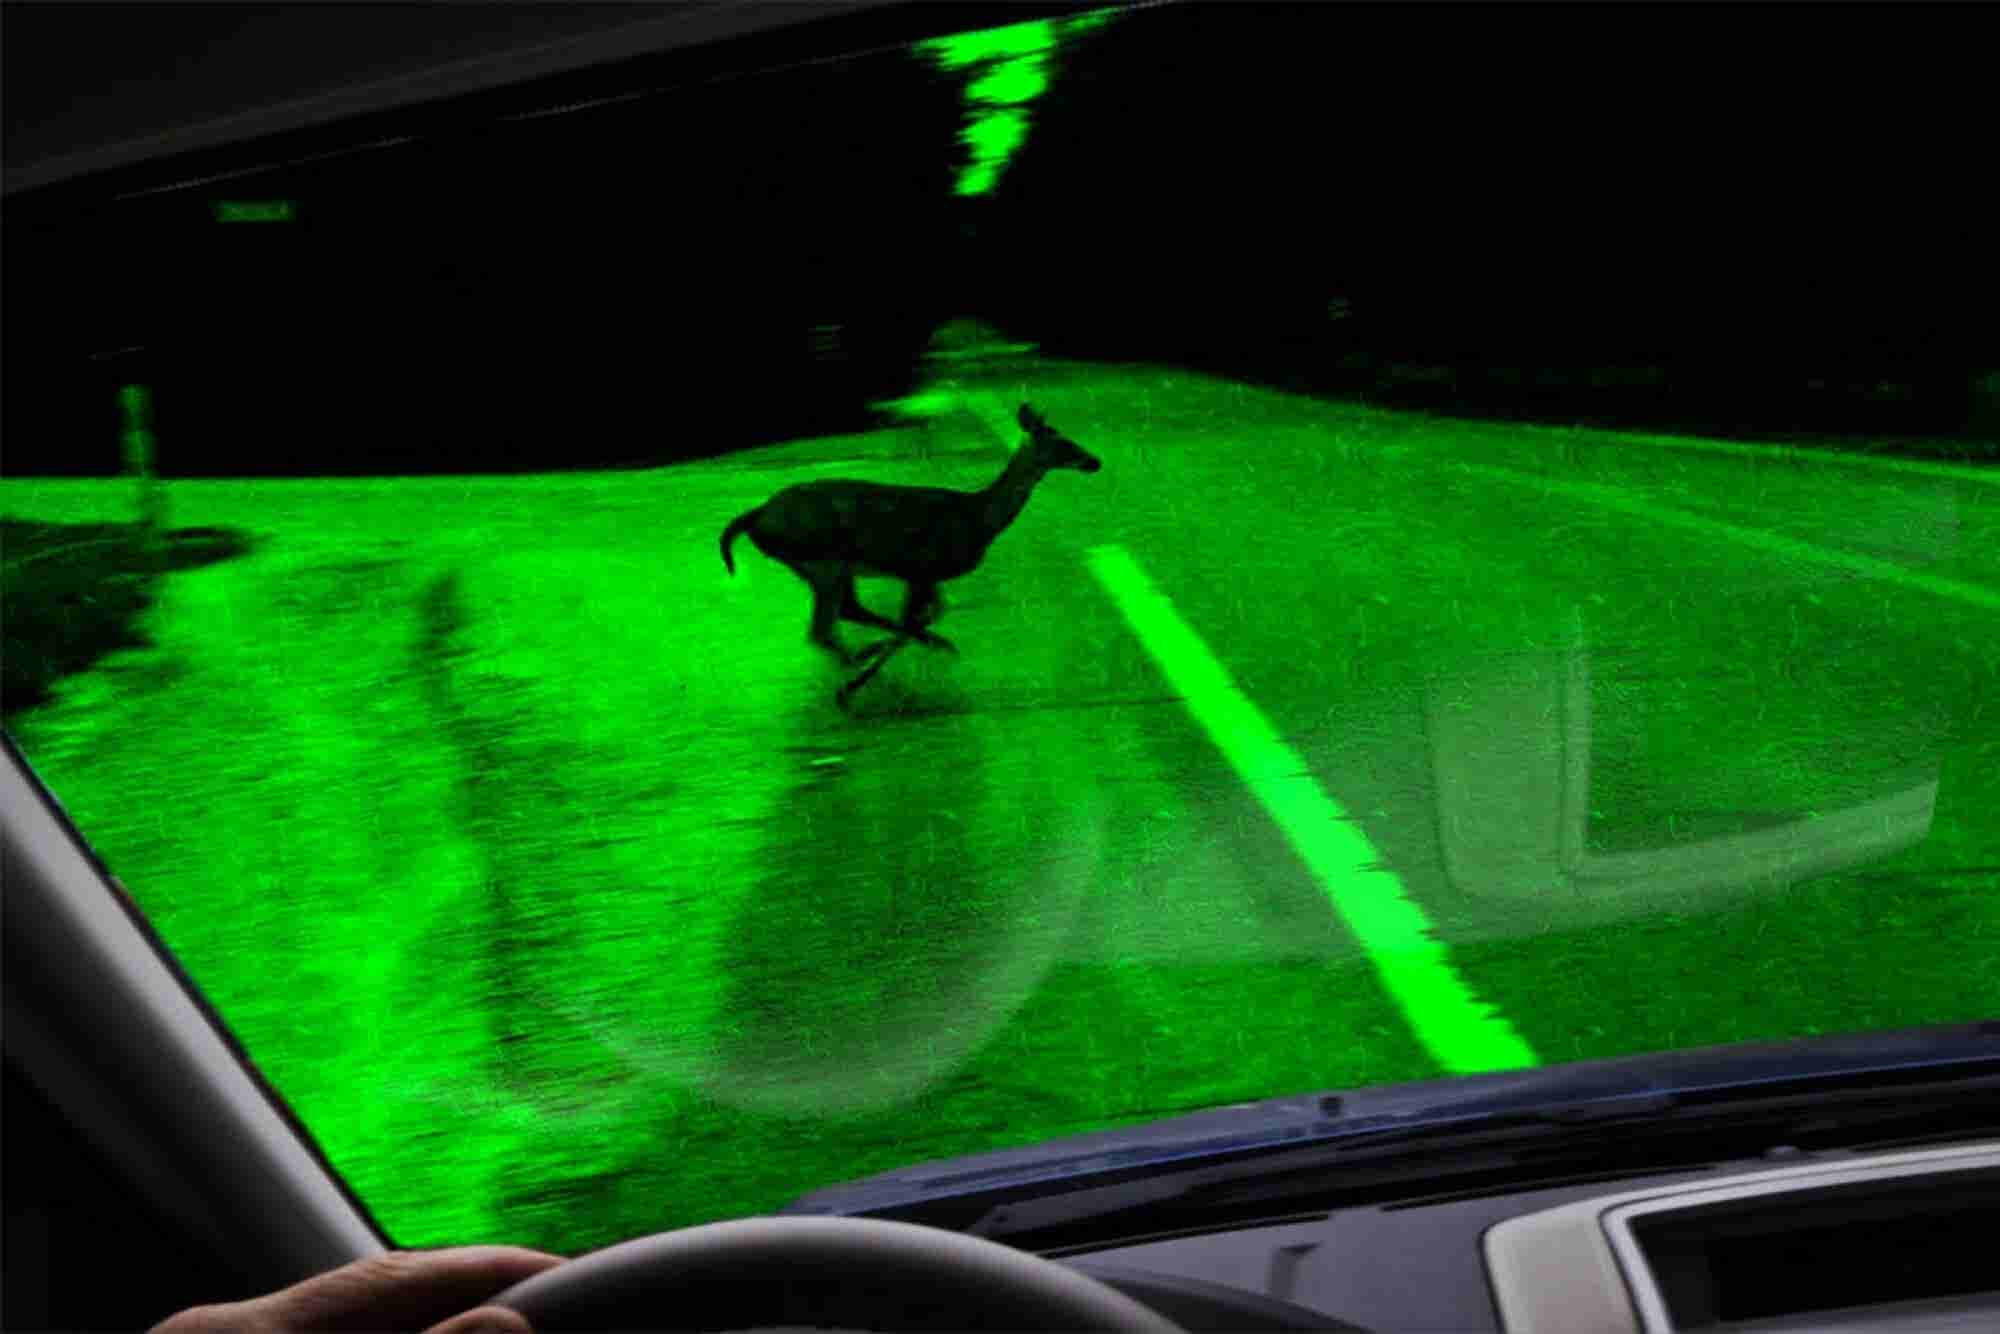 MIT Researchers Built a Chip That Could Bring Night Vision to Cars, Phones